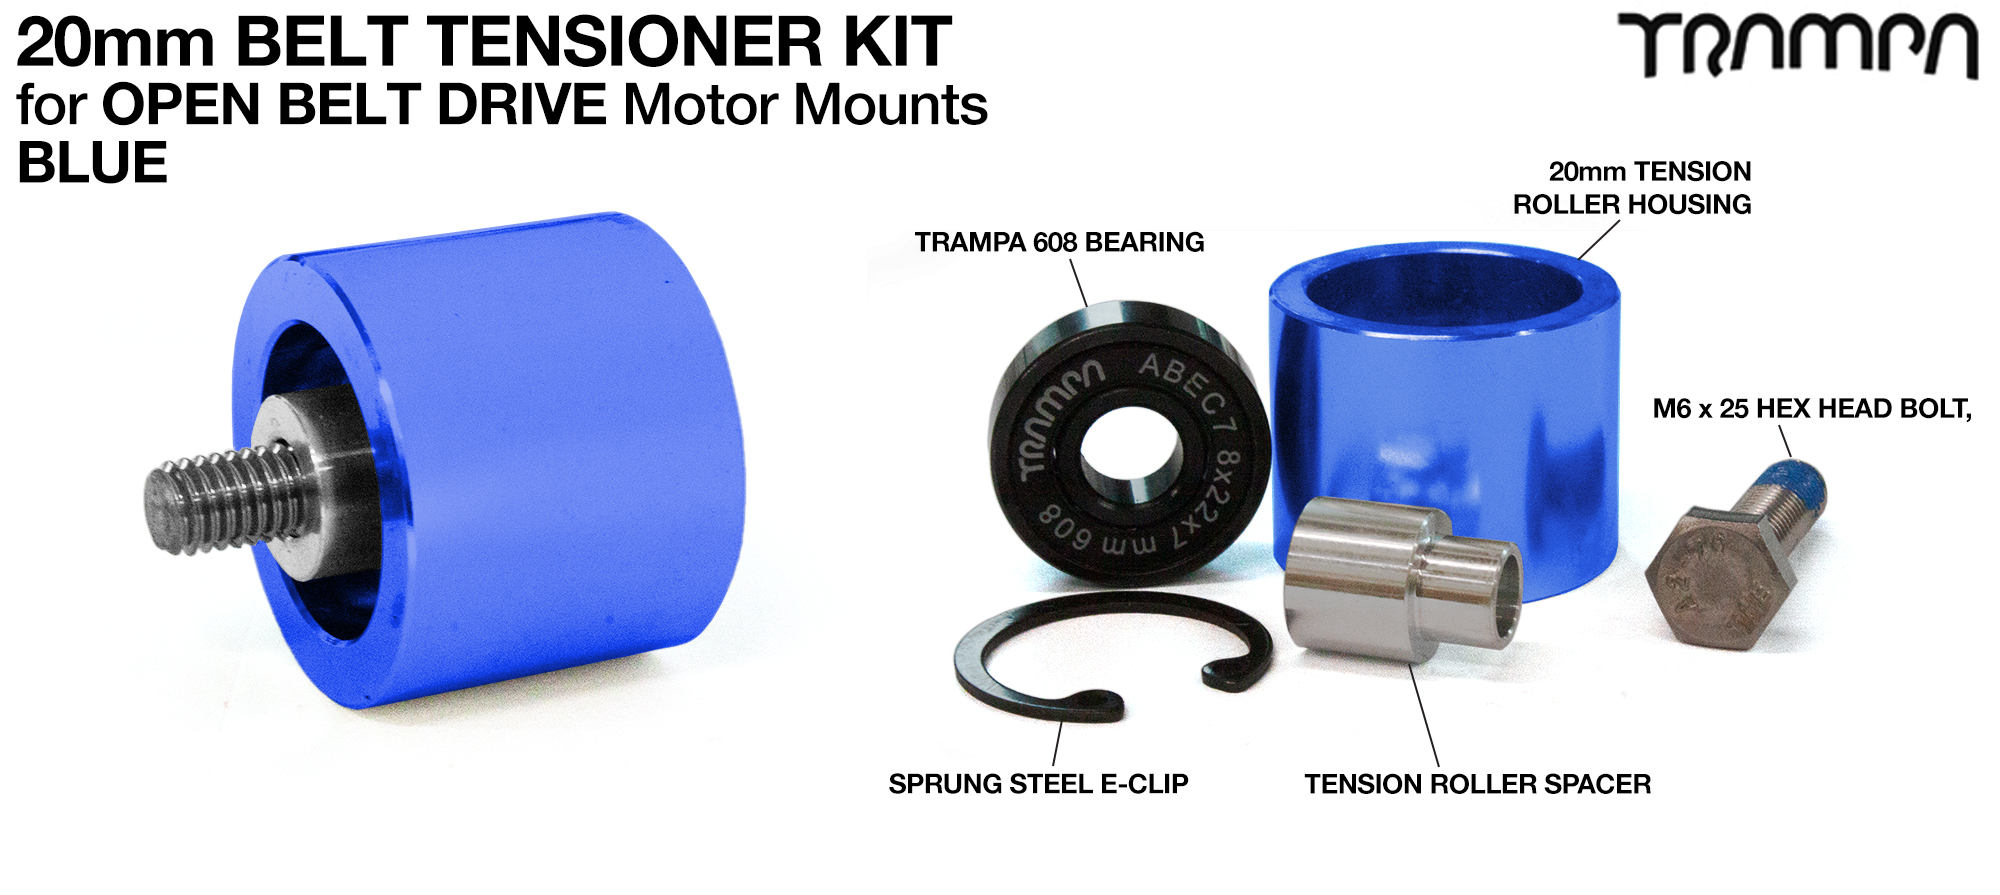 OPEN BELT DRIVE Belt Tensioning System for 20mm Belts - BLUE Roller Housing